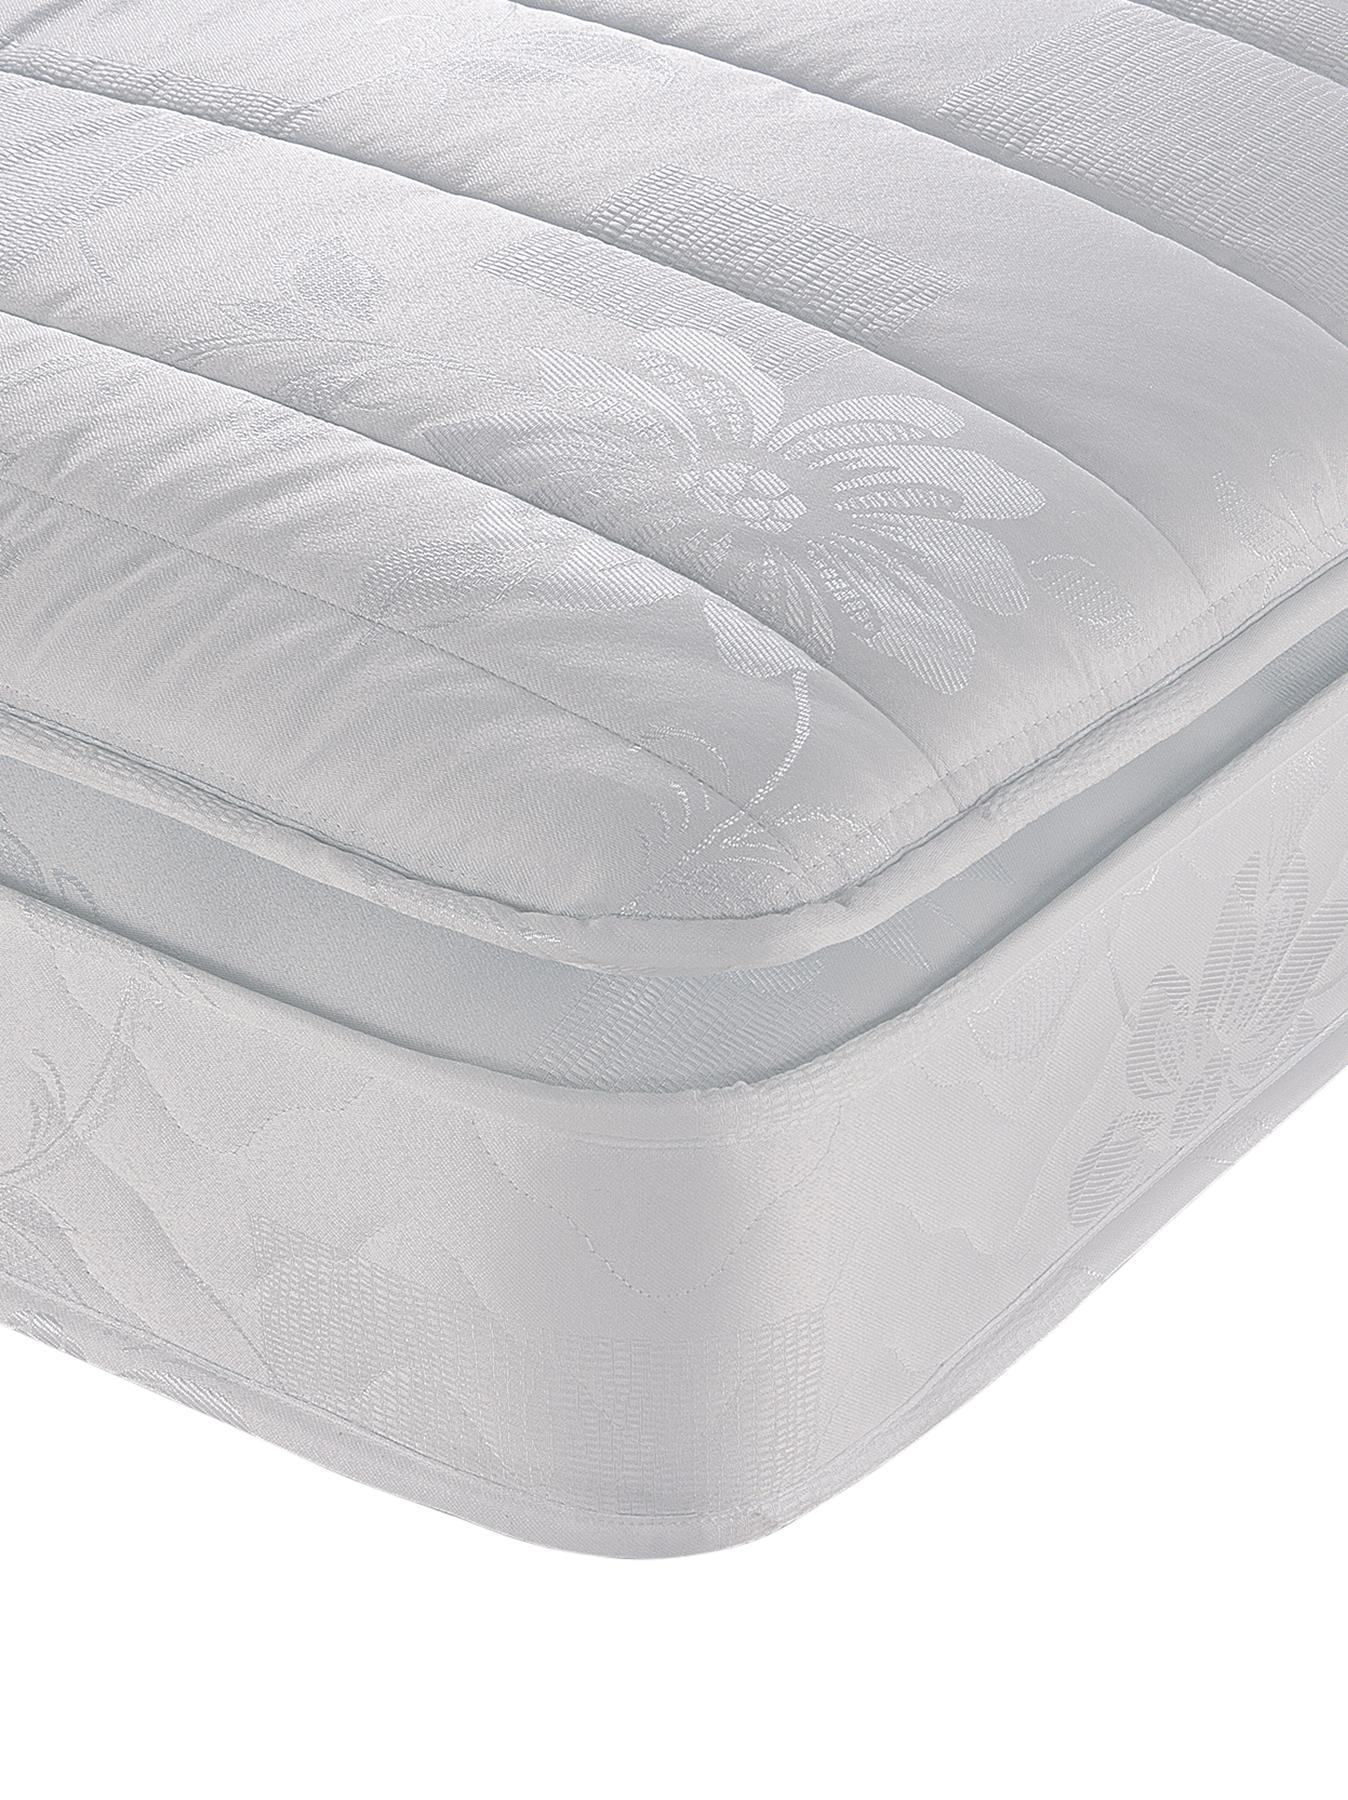 Astbury Pillowtop Mattress